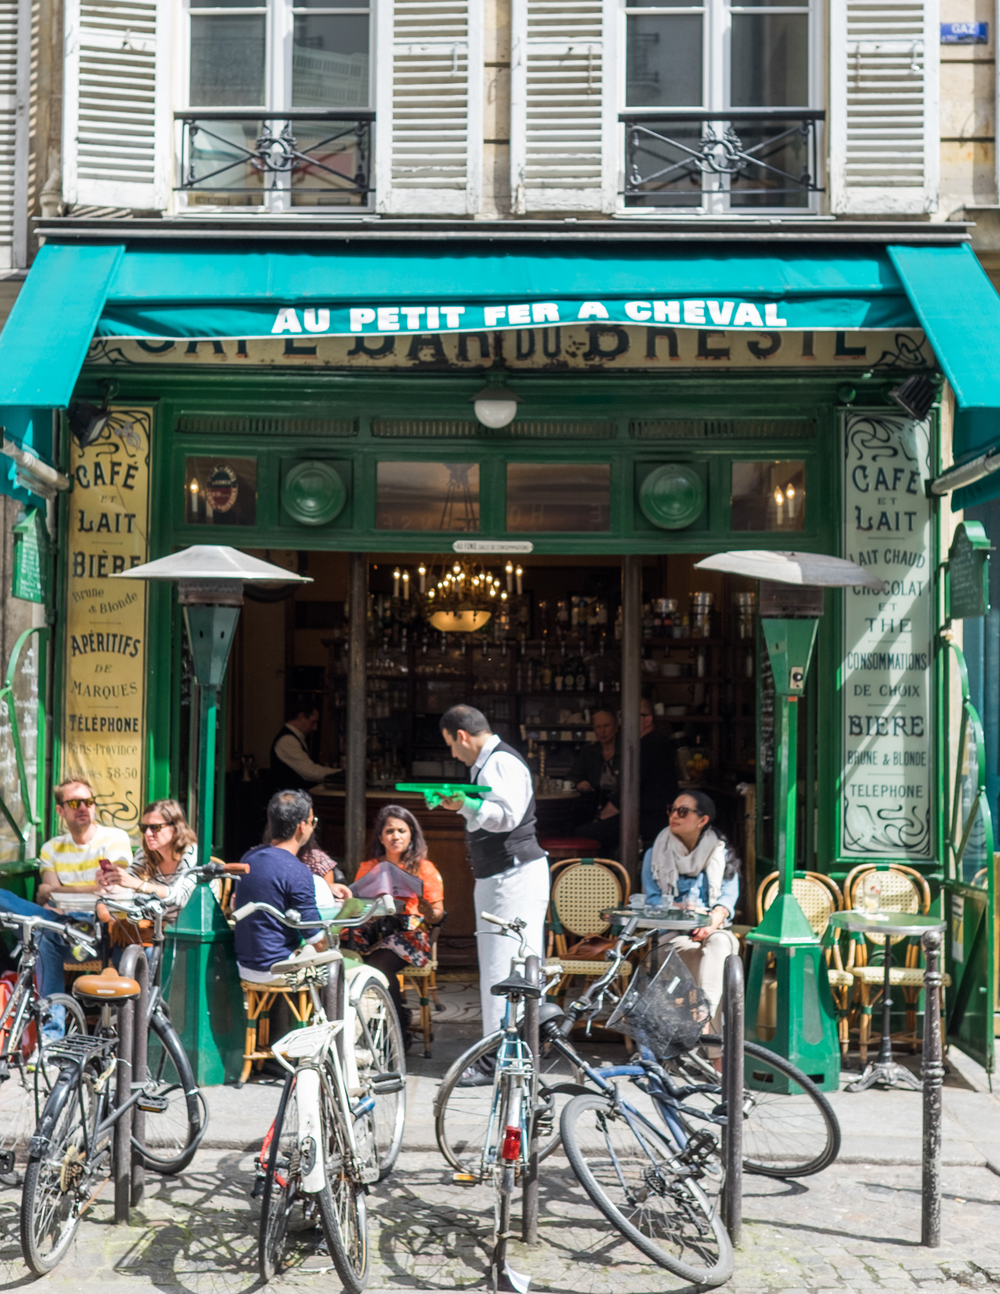 AU PETIT FER A CHEVAL  30 rue Vieille du Temple, 75004   INSIDER TIP  | Cafe life. The Marais is full of interesting characters and this is a great place to park yourself and people watch.